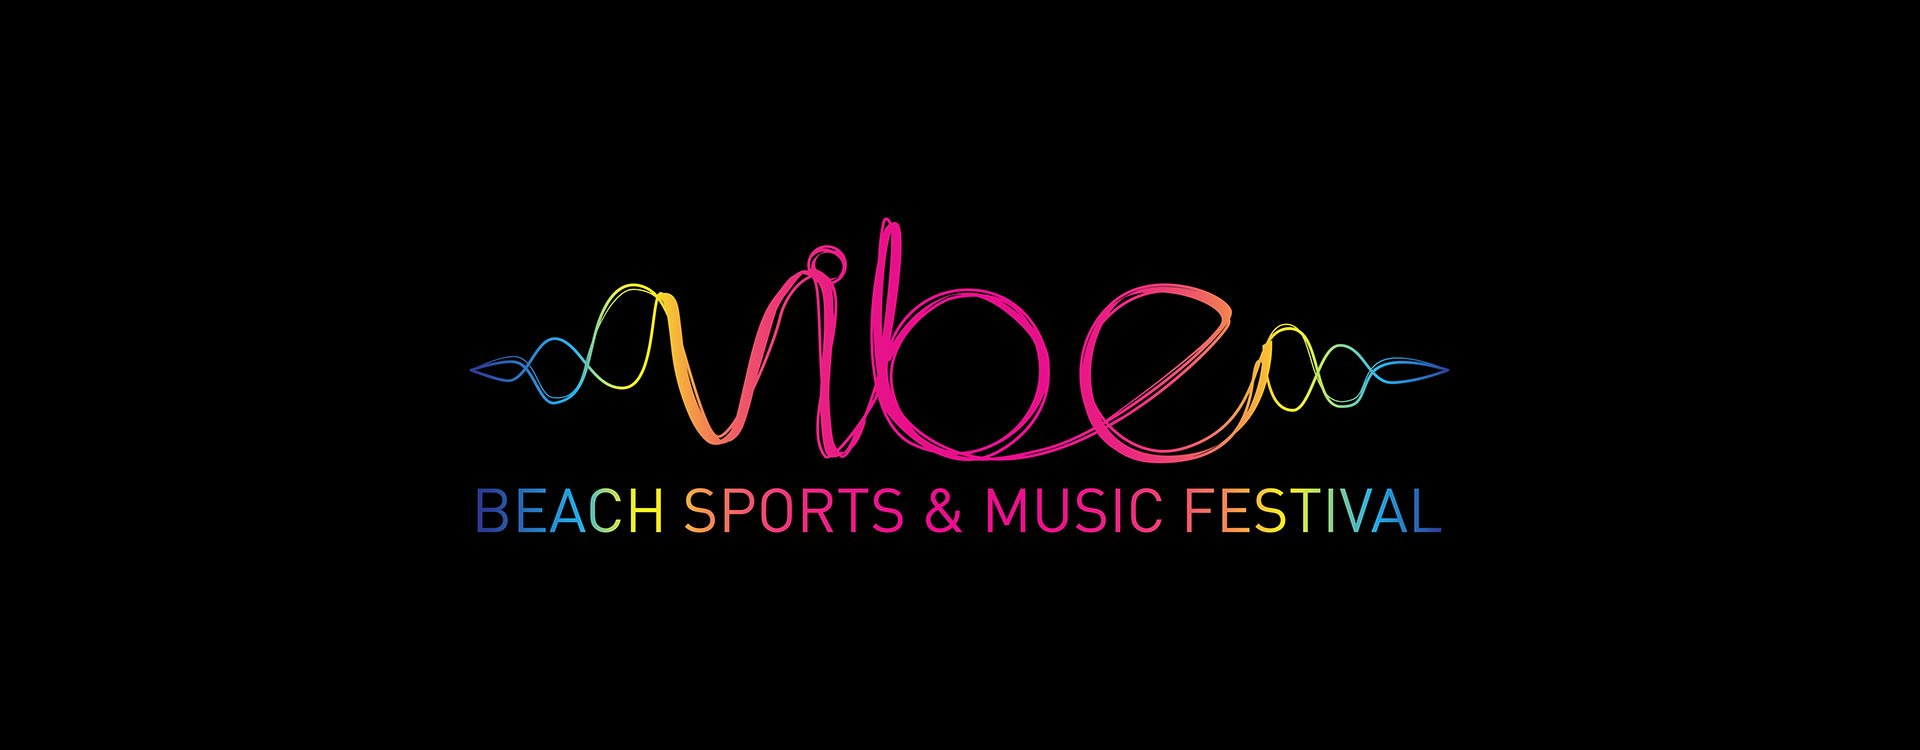 Vibe Beach Sports and Music Festival, 21 Mar 2015‏